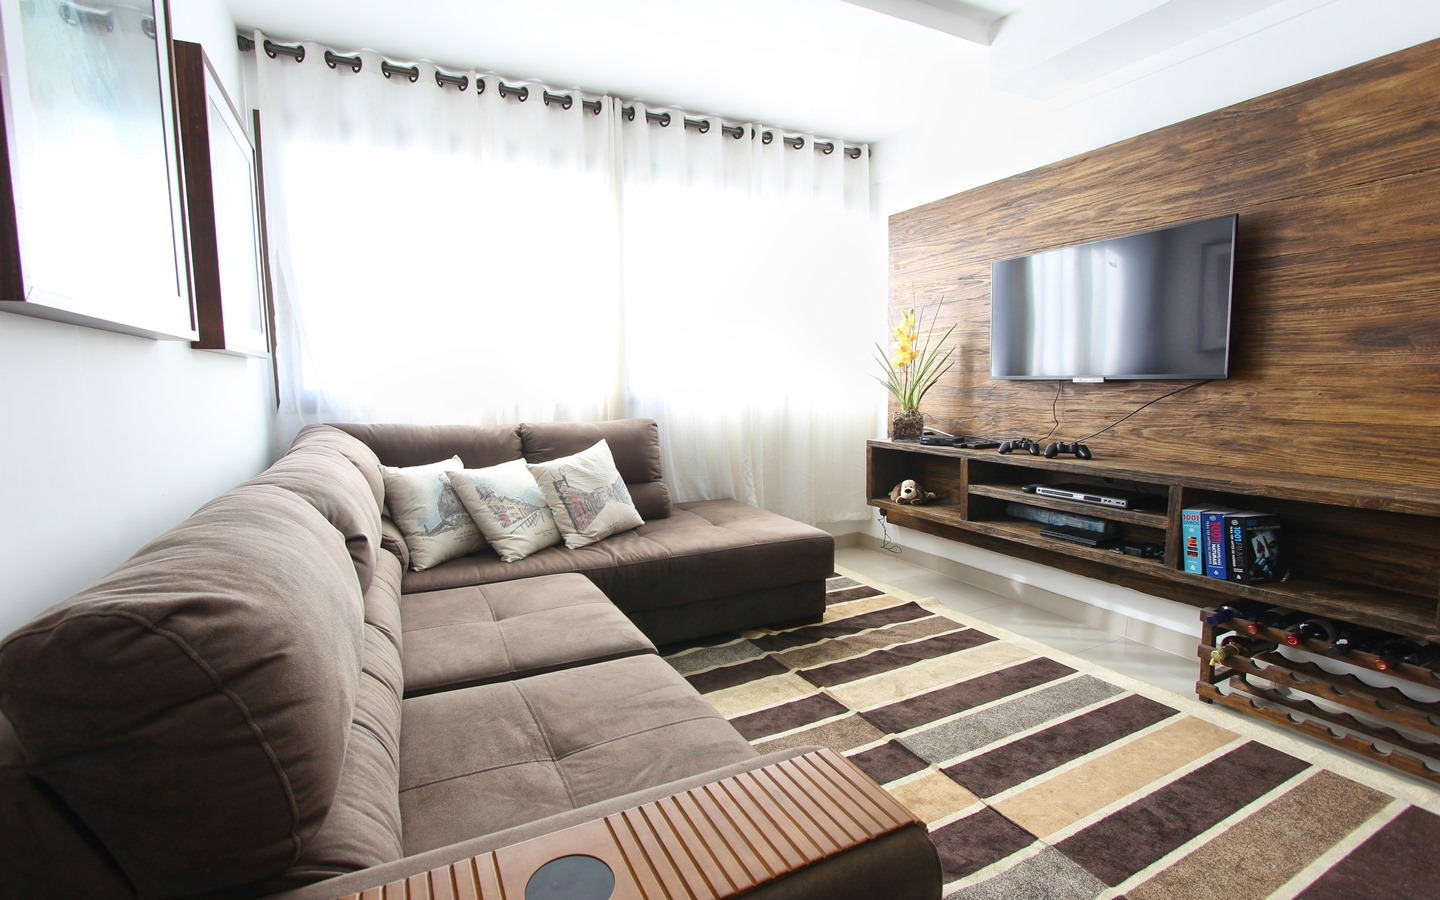 Un-mounted TV's are a safety risk as well as take up unnecessary space